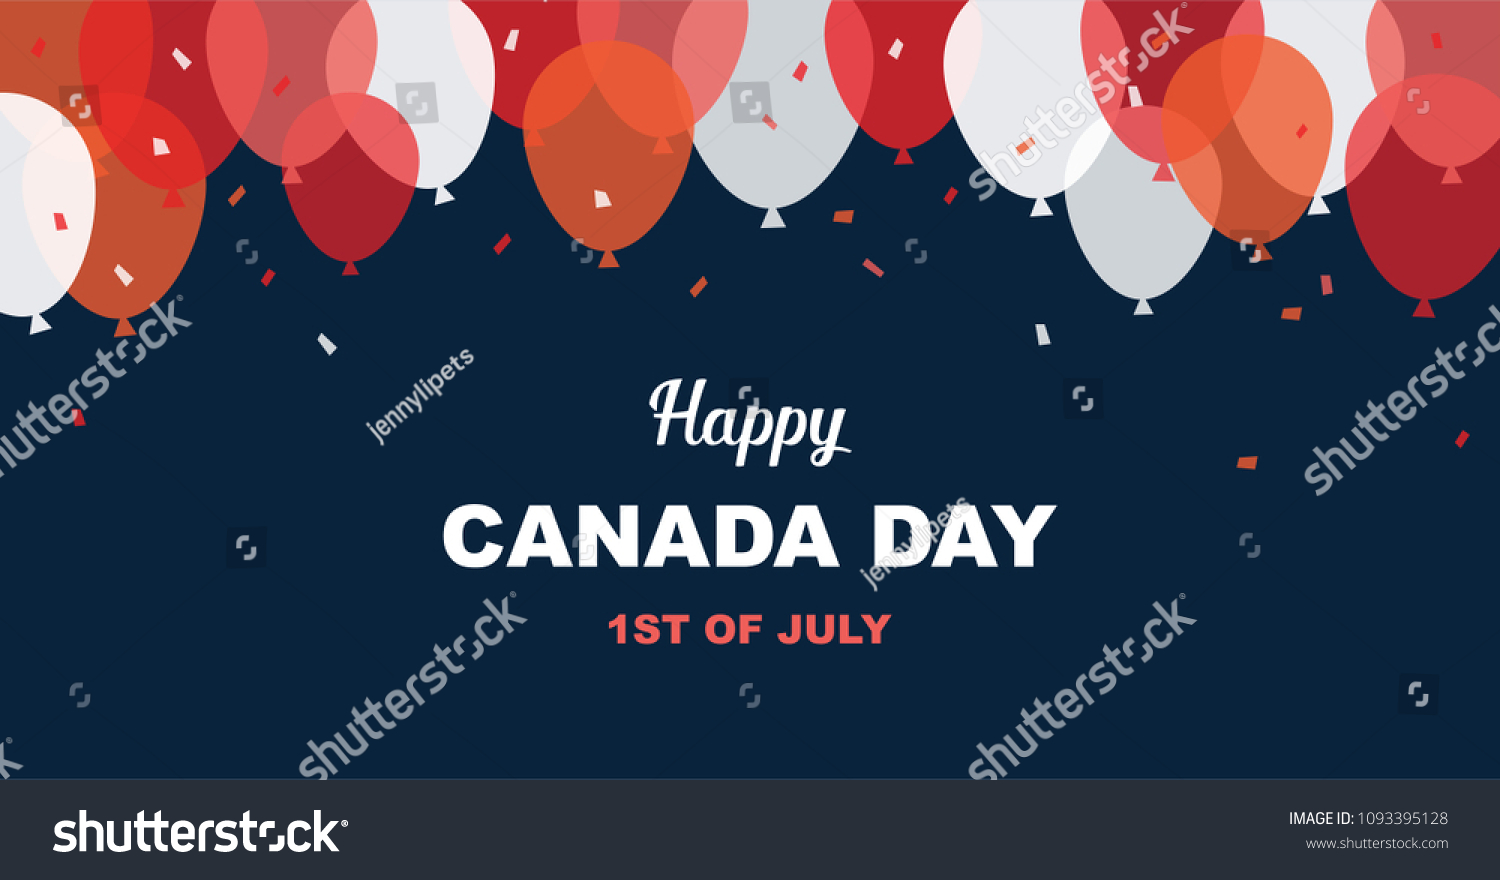 1 July Happy Canada Day Greeting Stock Vector 1093395128 Shutterstock